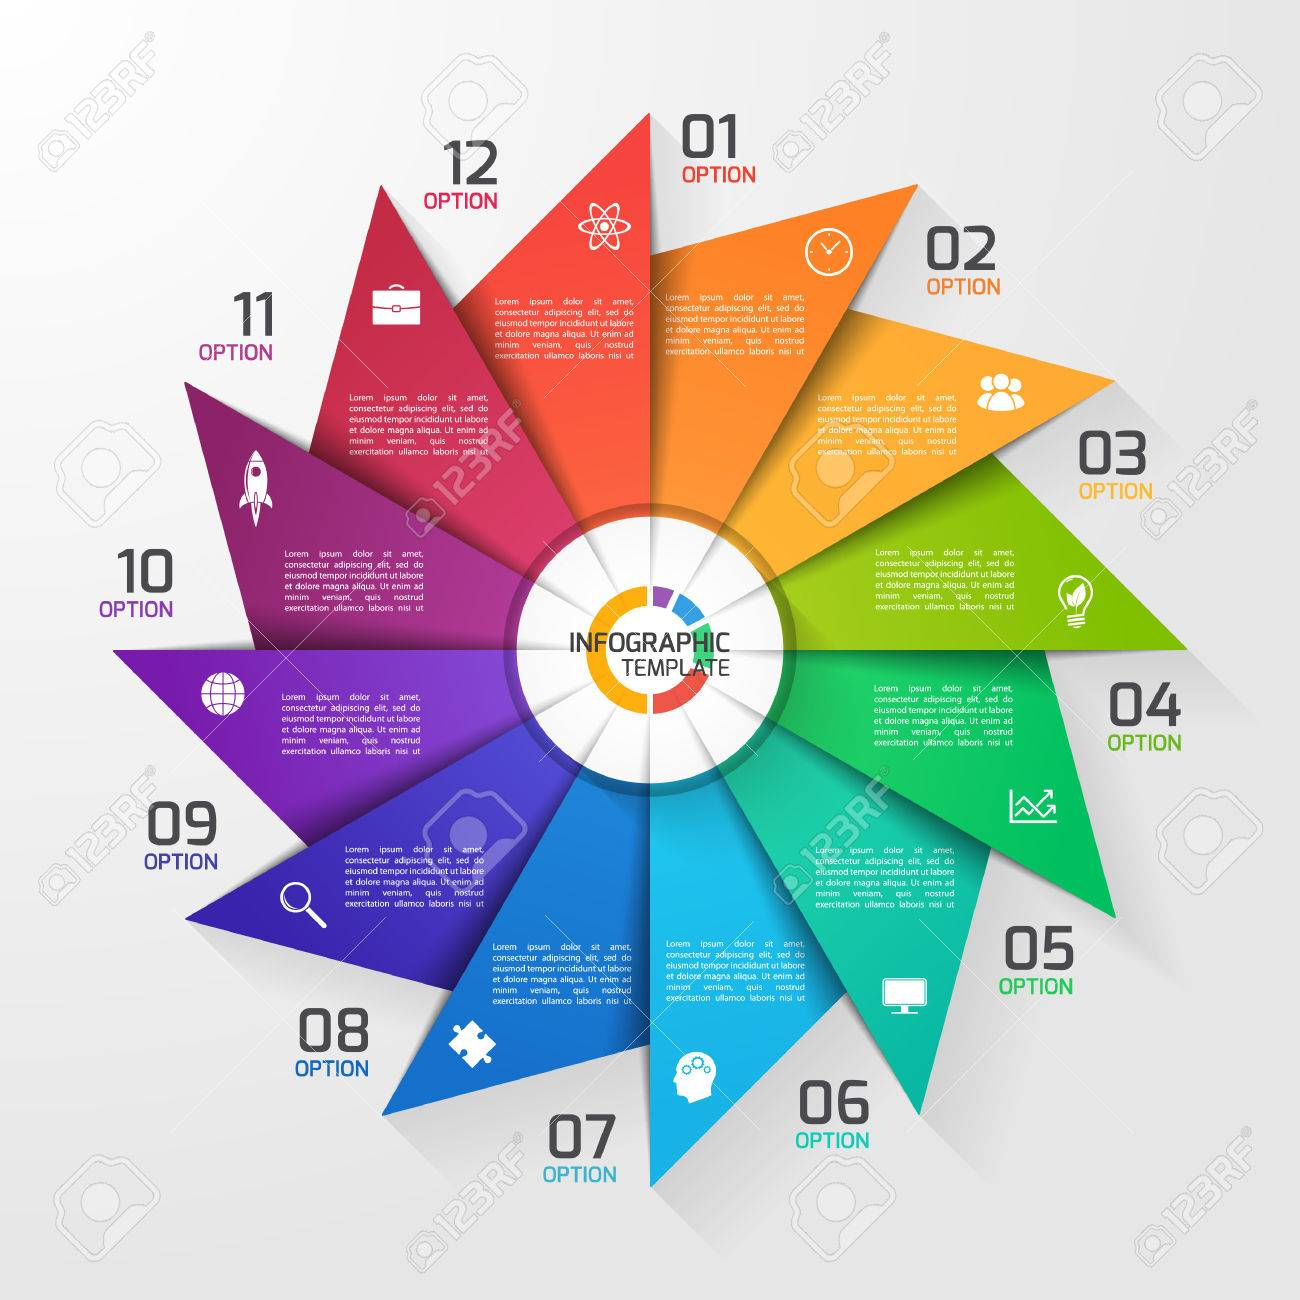 windmill style circle infographic template for graphs charts